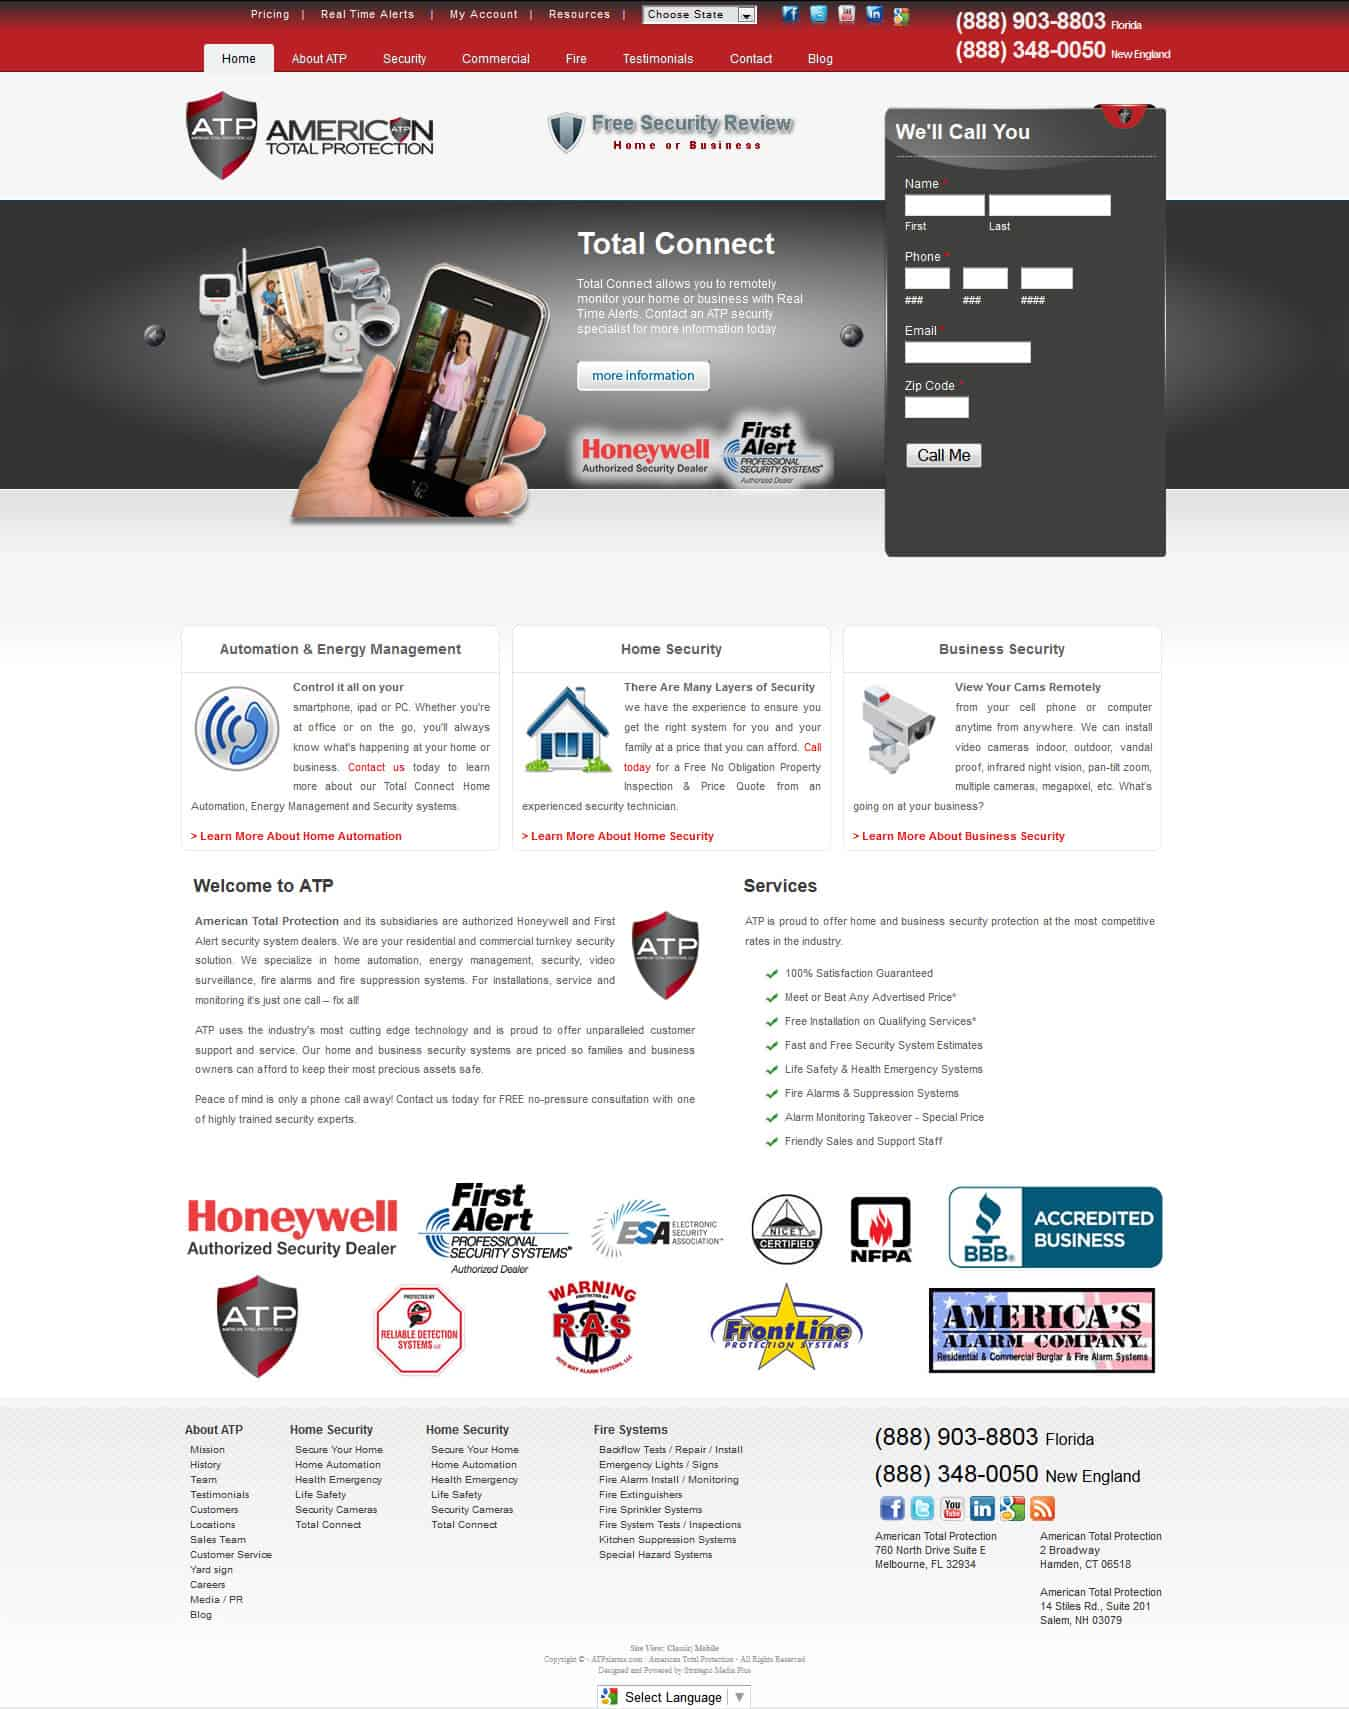 Need a website like ATPalarms.com? Strategic Media Plus specializes in SEO Websites, Local SEO, Social Media and Email Marketing - Call (877) 855-5241